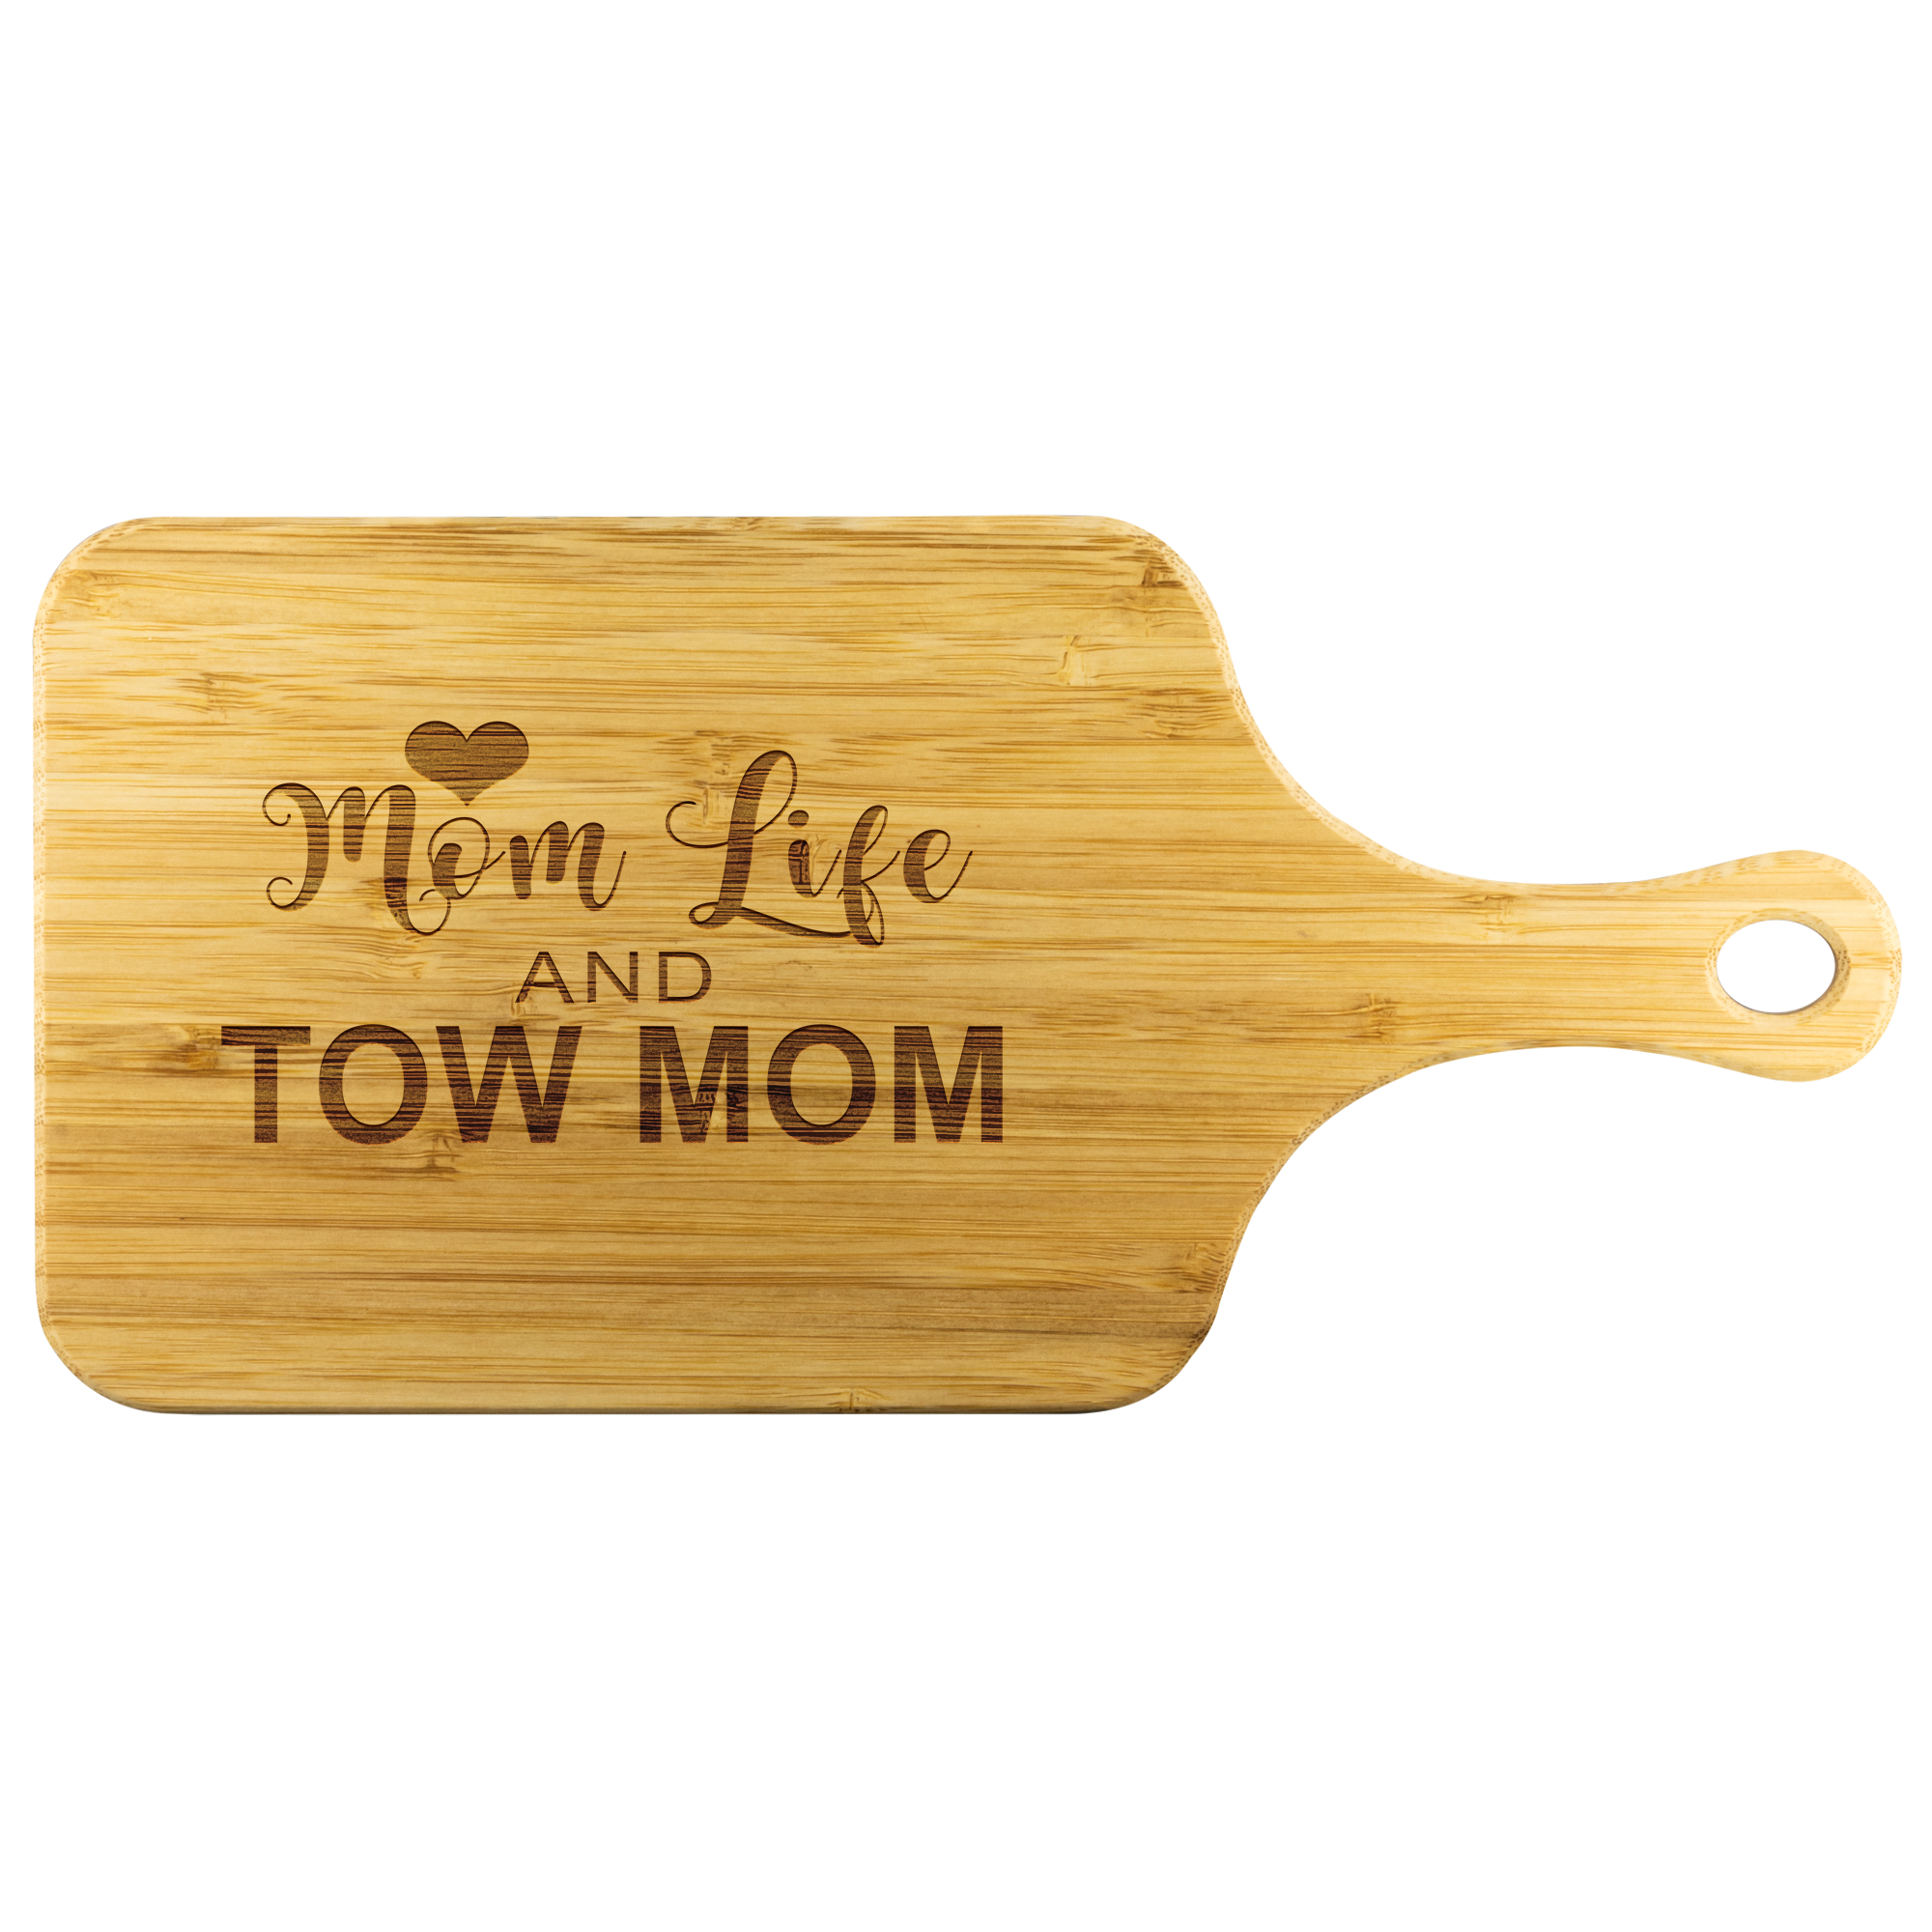 Mom Life Tow Wife Wood Cutting Board